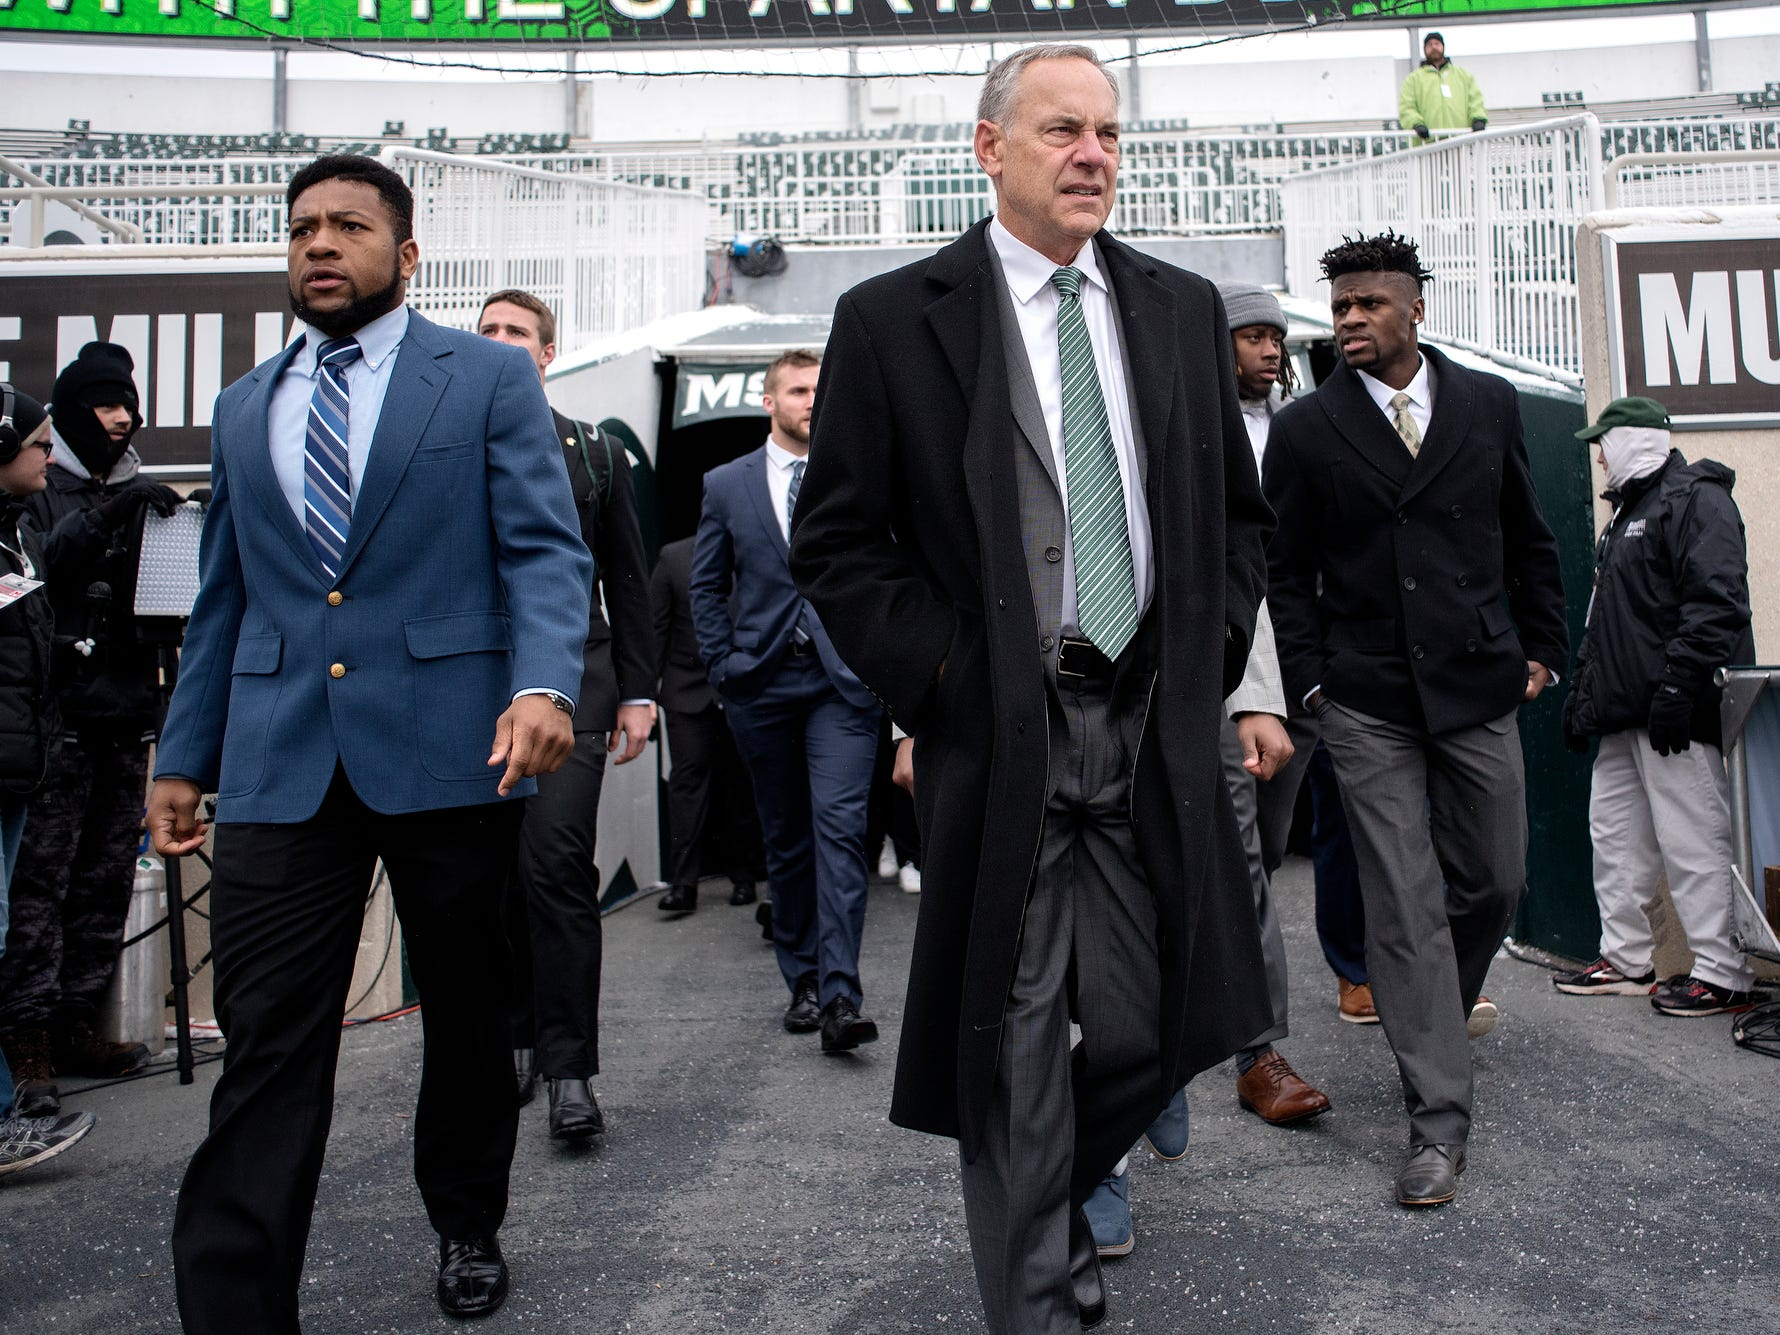 Michigan State head coach Mark Dantonio, center, enters Spartan Stadium with the team before the football game against Ohio State on Saturday, Nov. 10, 2018, in East Lansing.